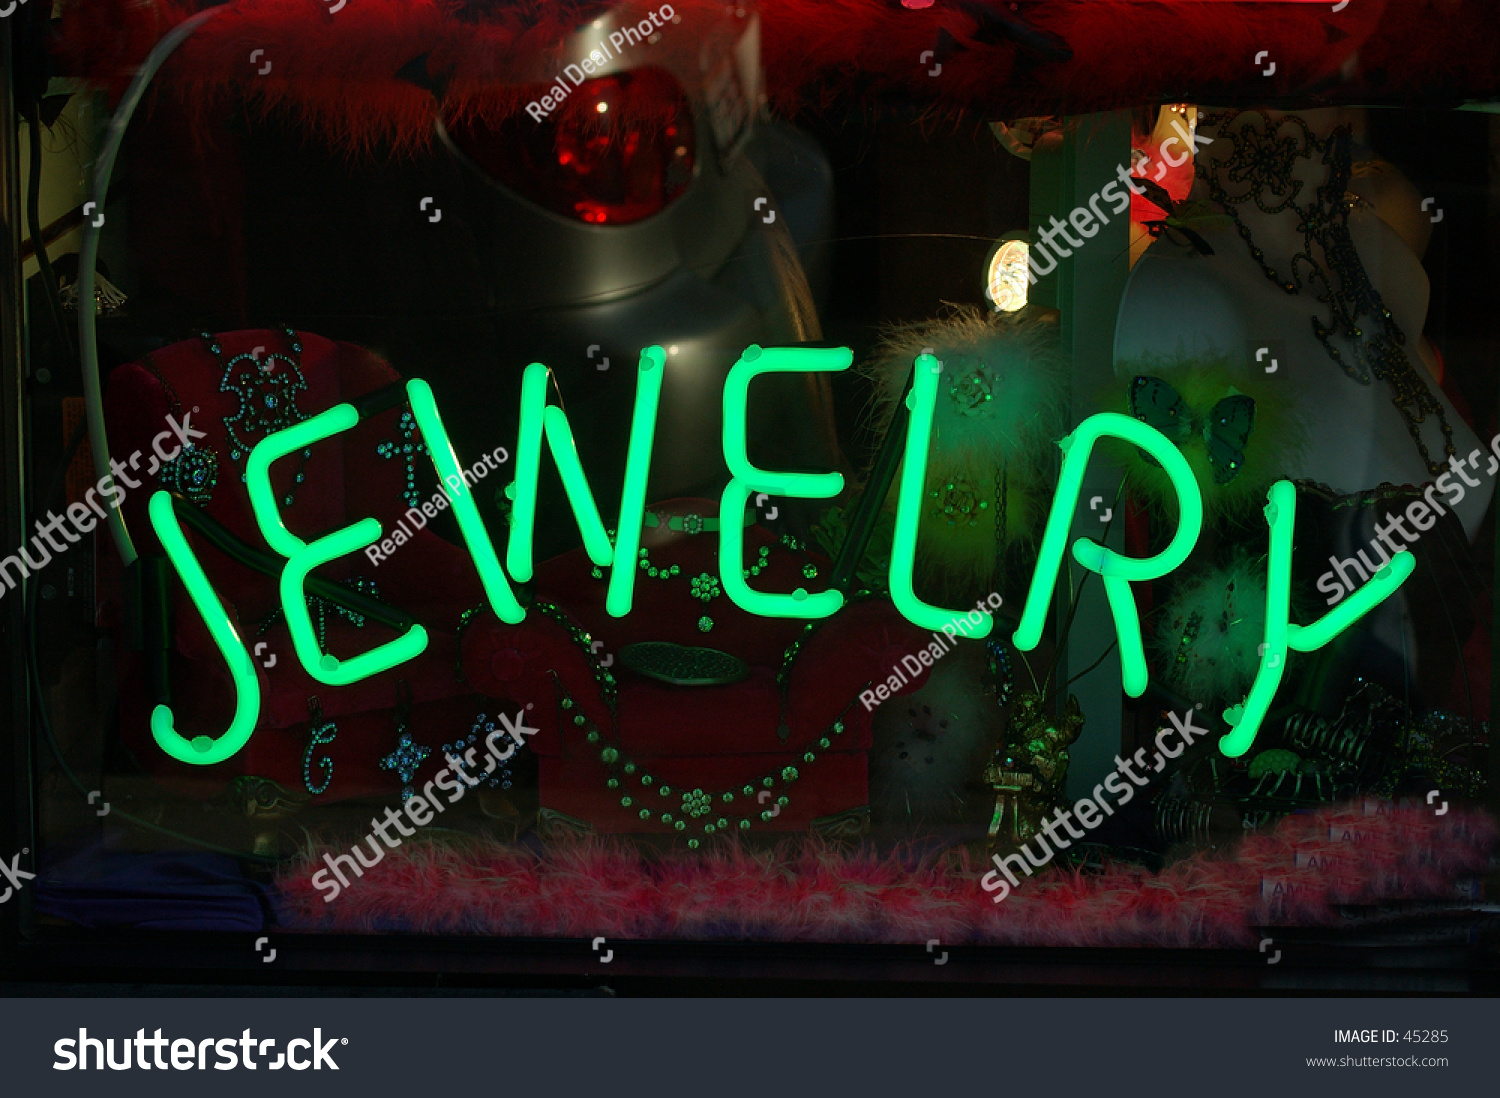 Neon jewelry sign in a los angeles fashion district for Fashion jewelry district los angeles